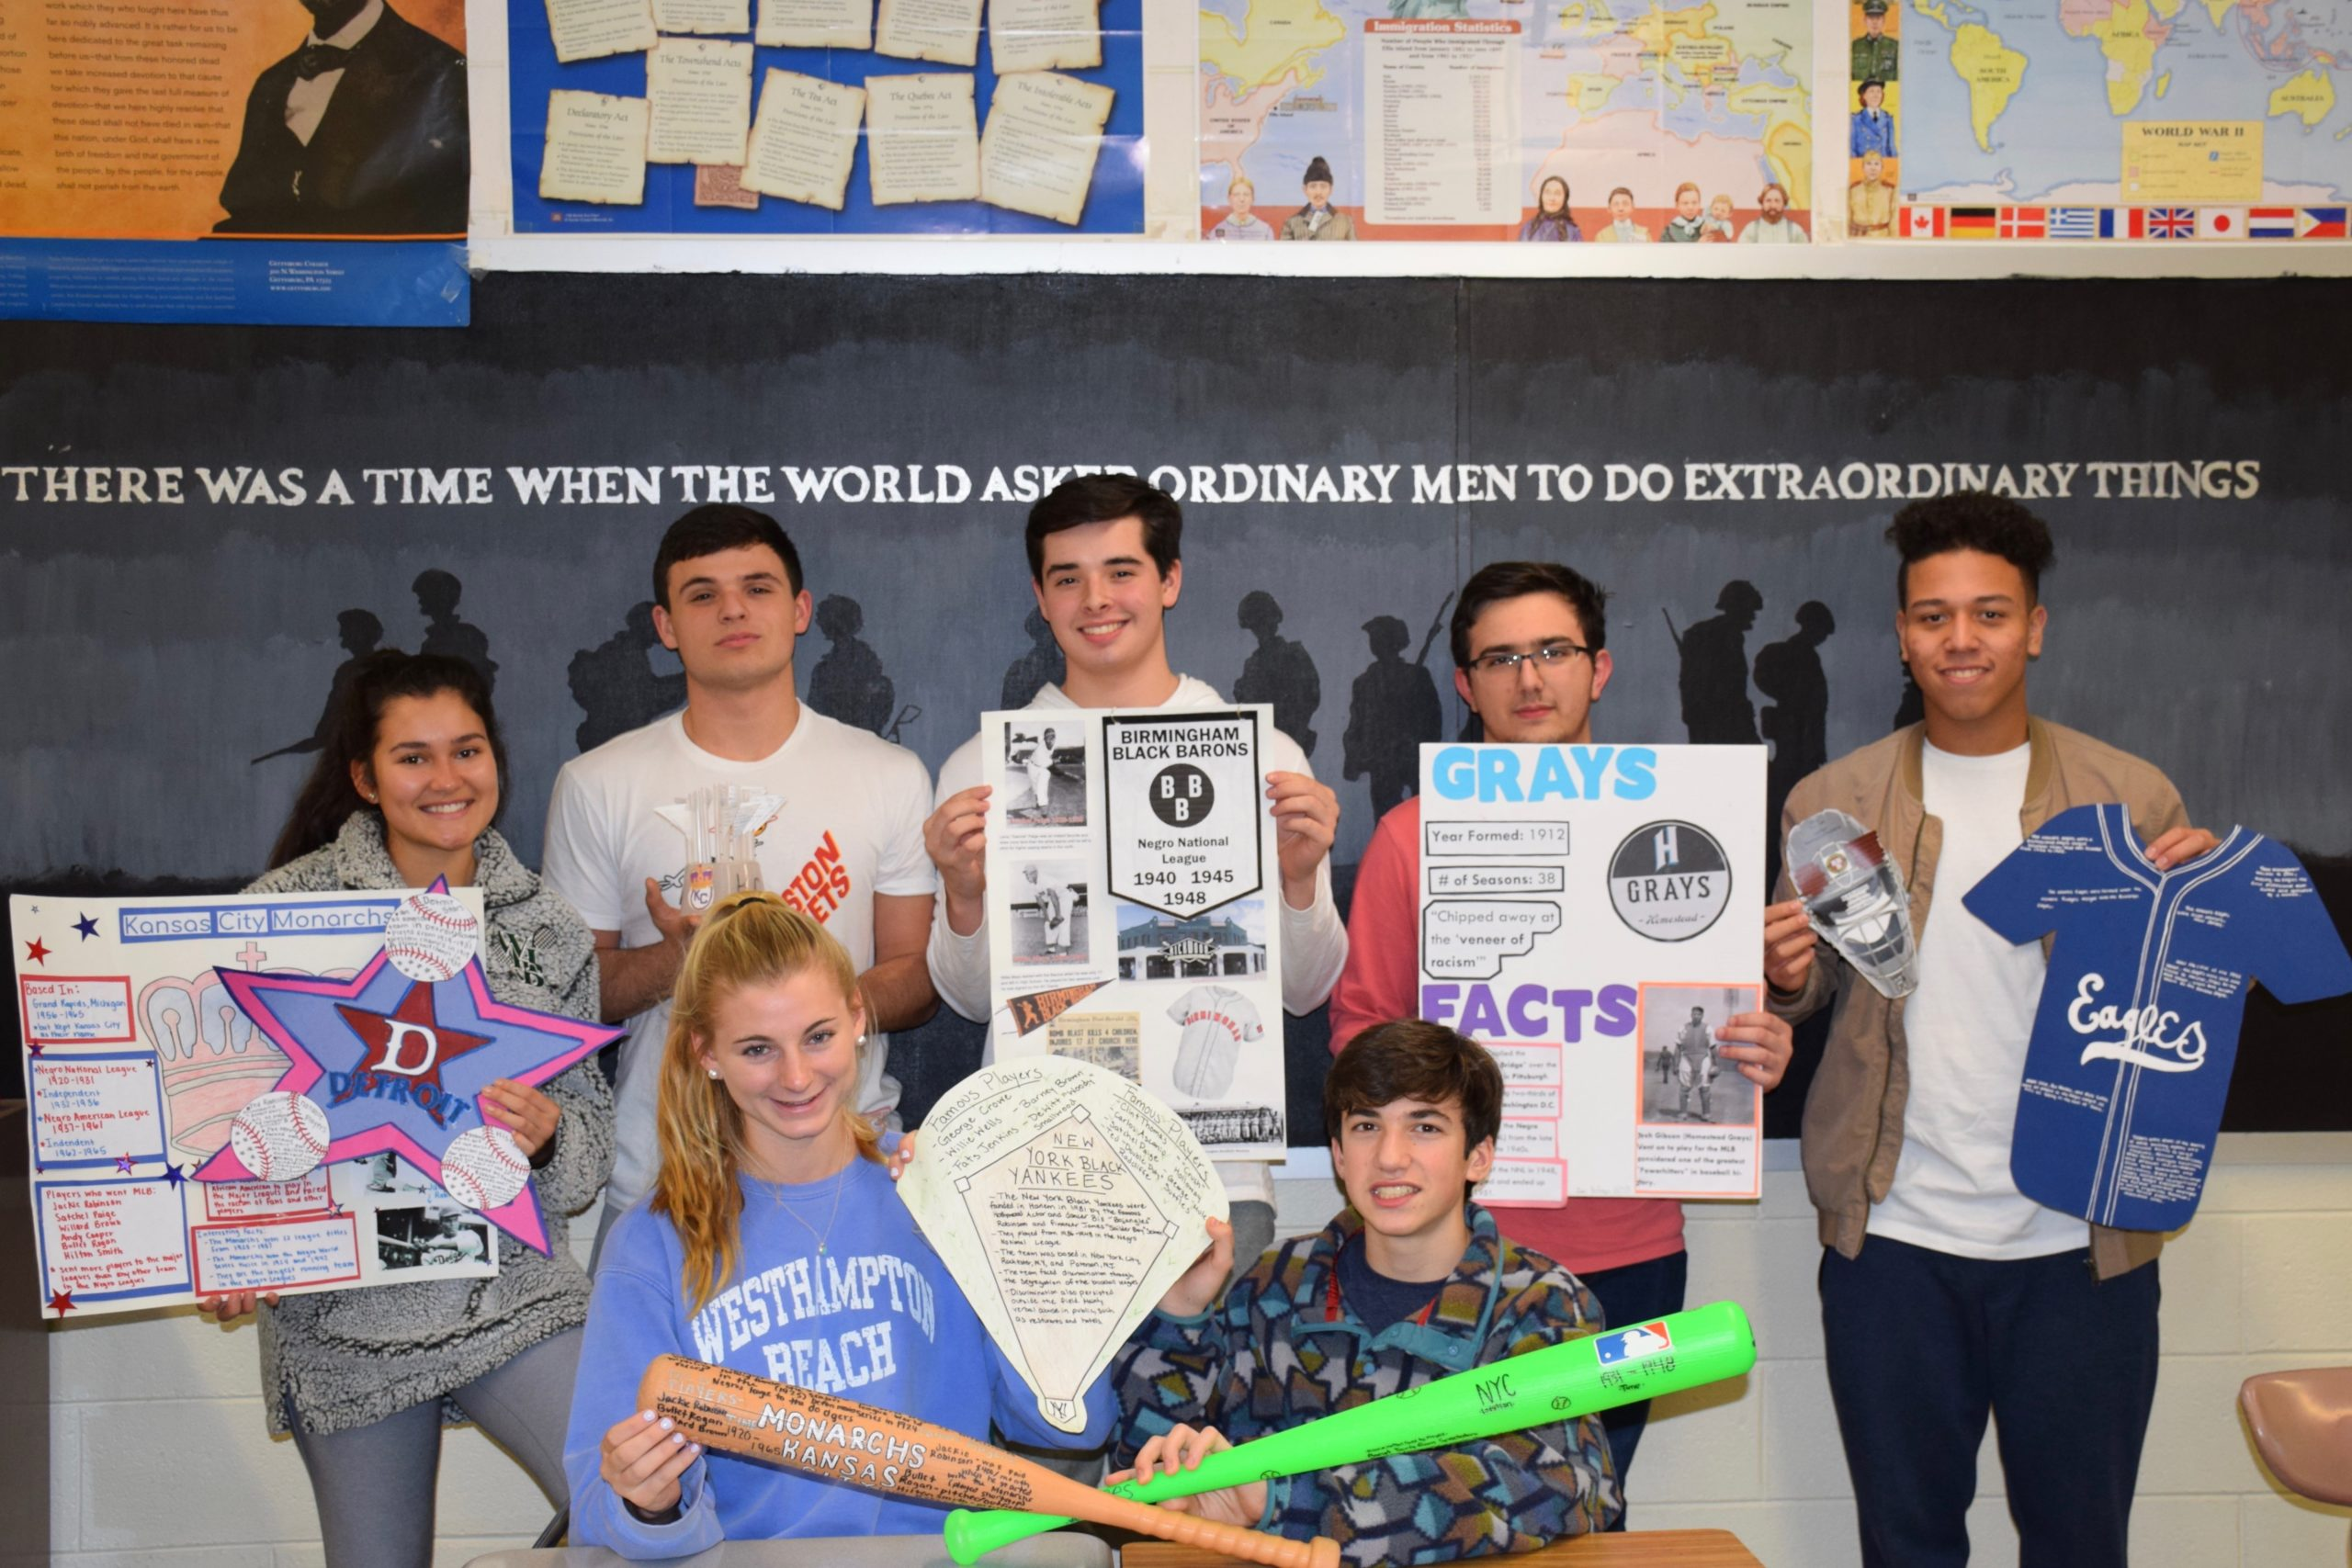 AP U.S. History students at Westhampton Beach High School recently marked Black History Month by researching the Negro Baseball League and creating projects to display what they learned. Along with team names and player information, the projects explored the discrimination that the league members had faced.